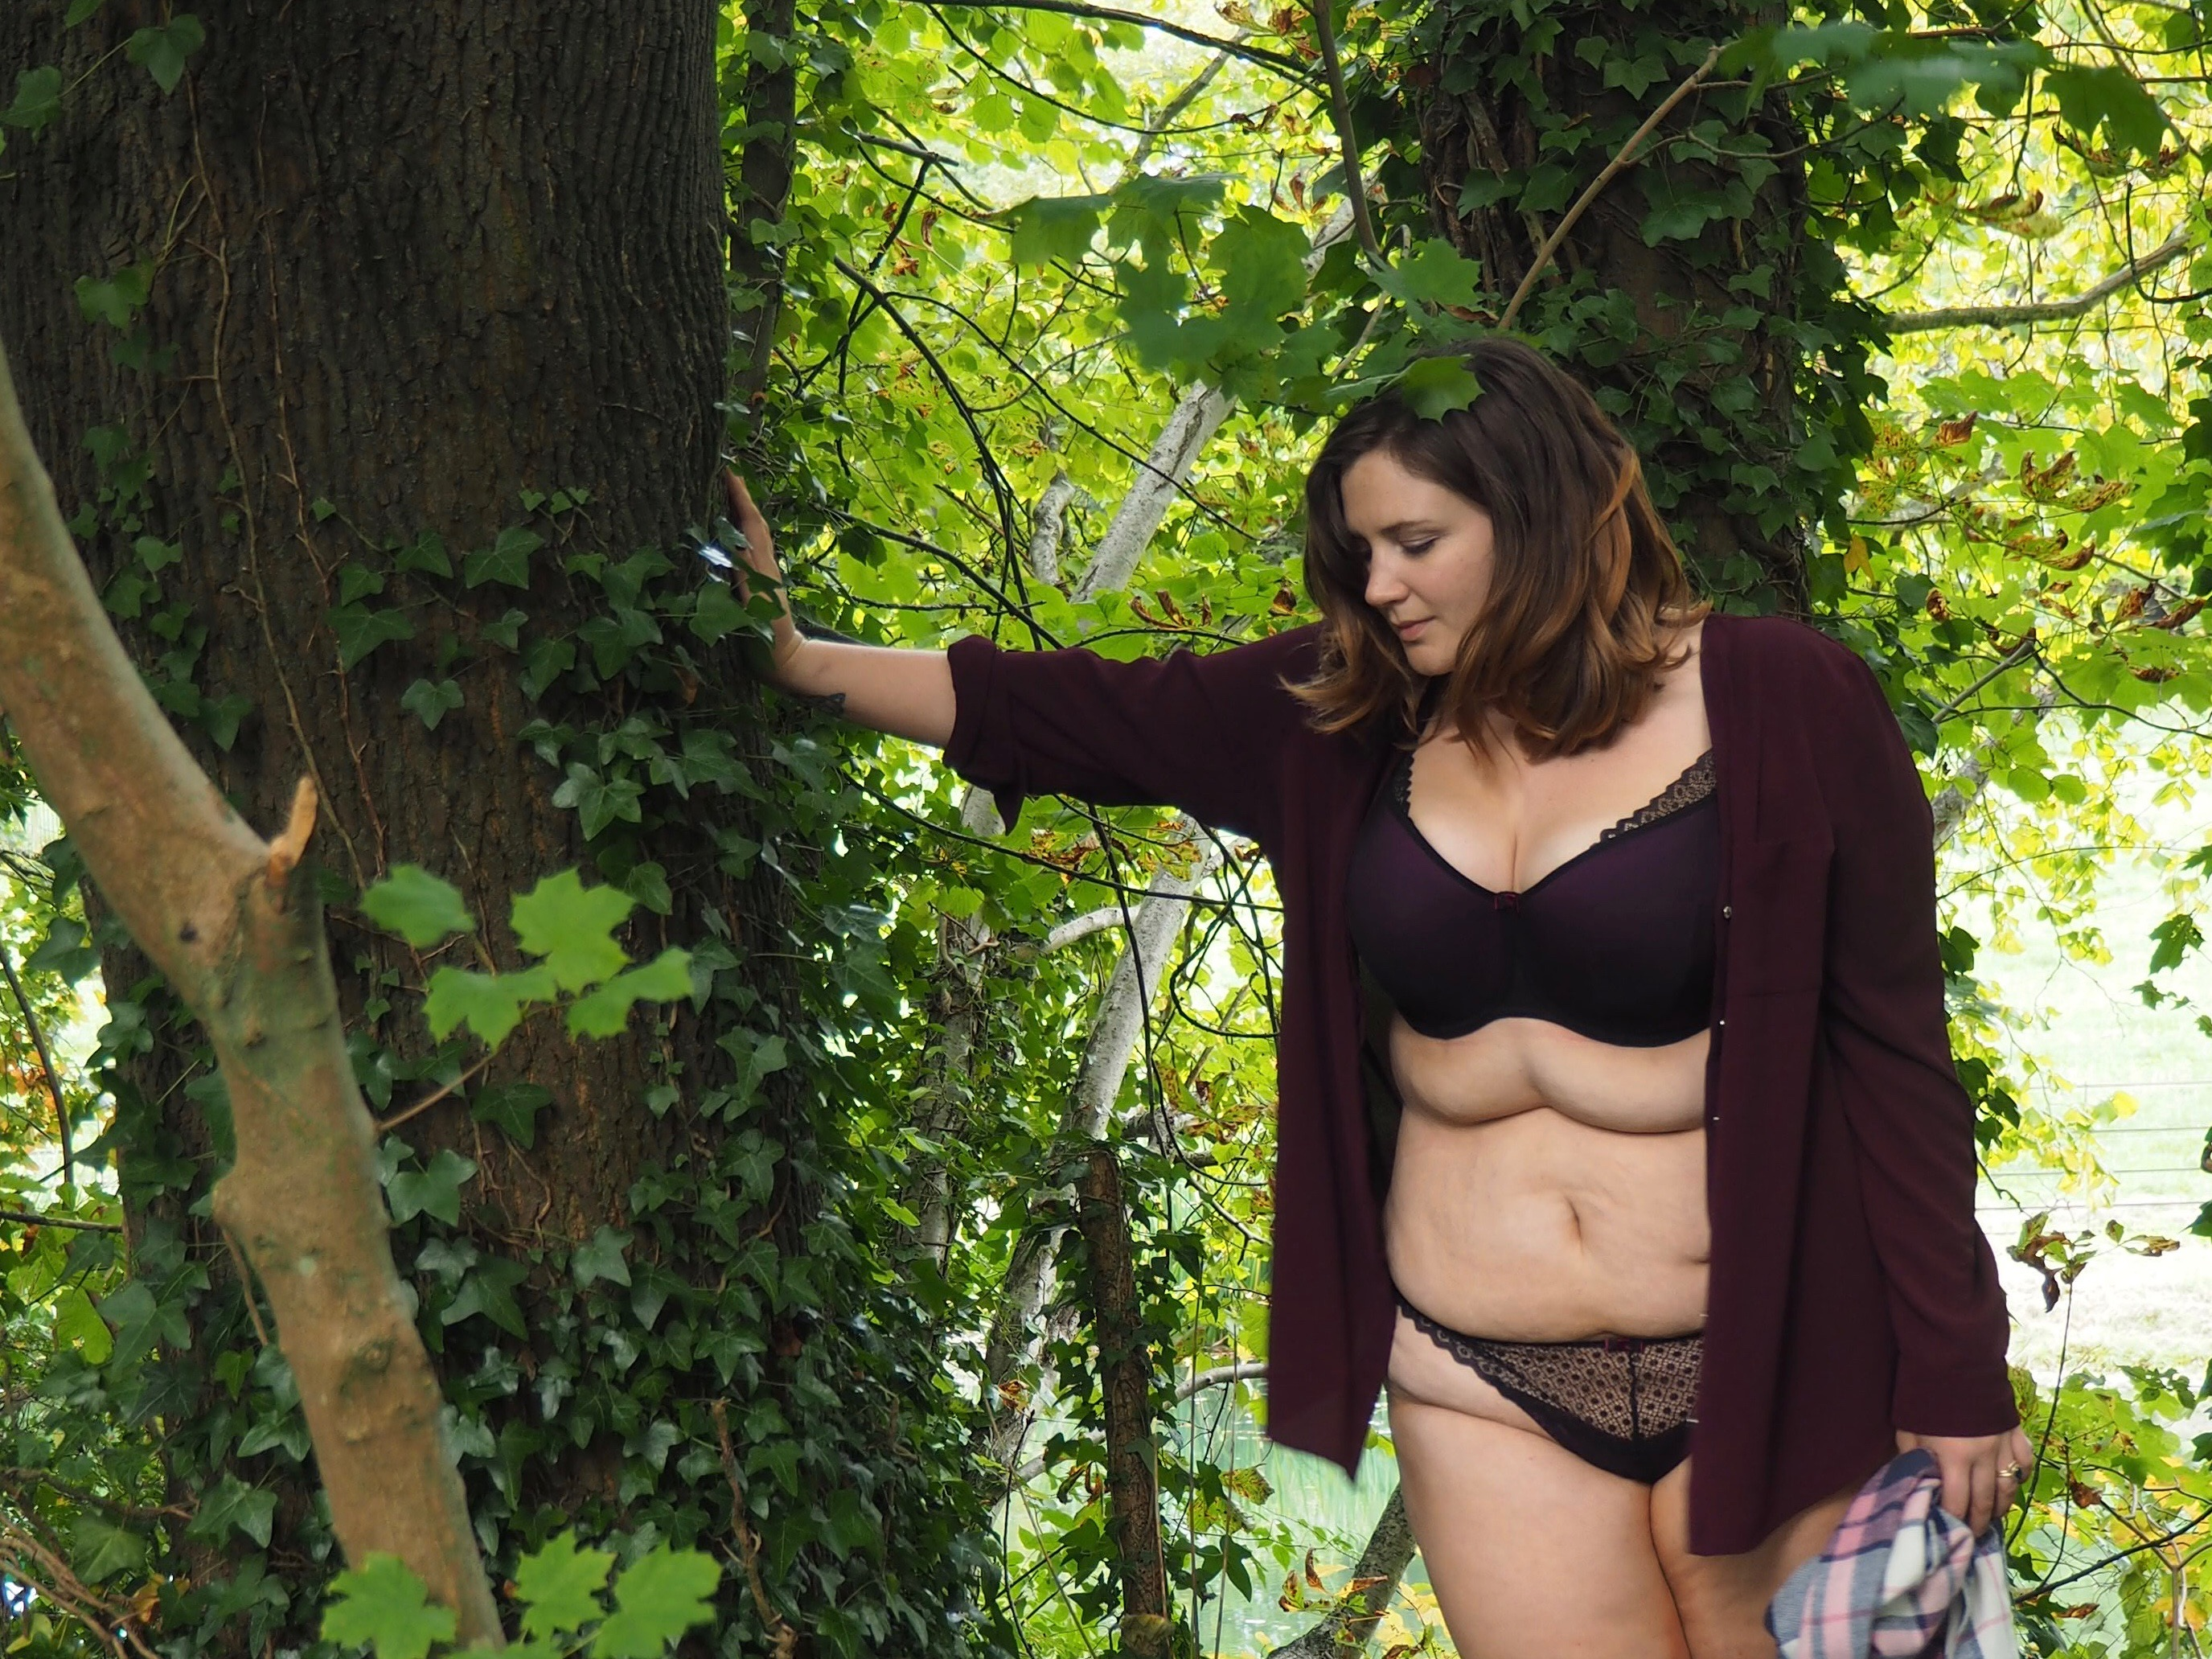 Quiet in the Wild 3! A/W Fuller Bust Lingerie with Curvy Kate @ Bra Stop